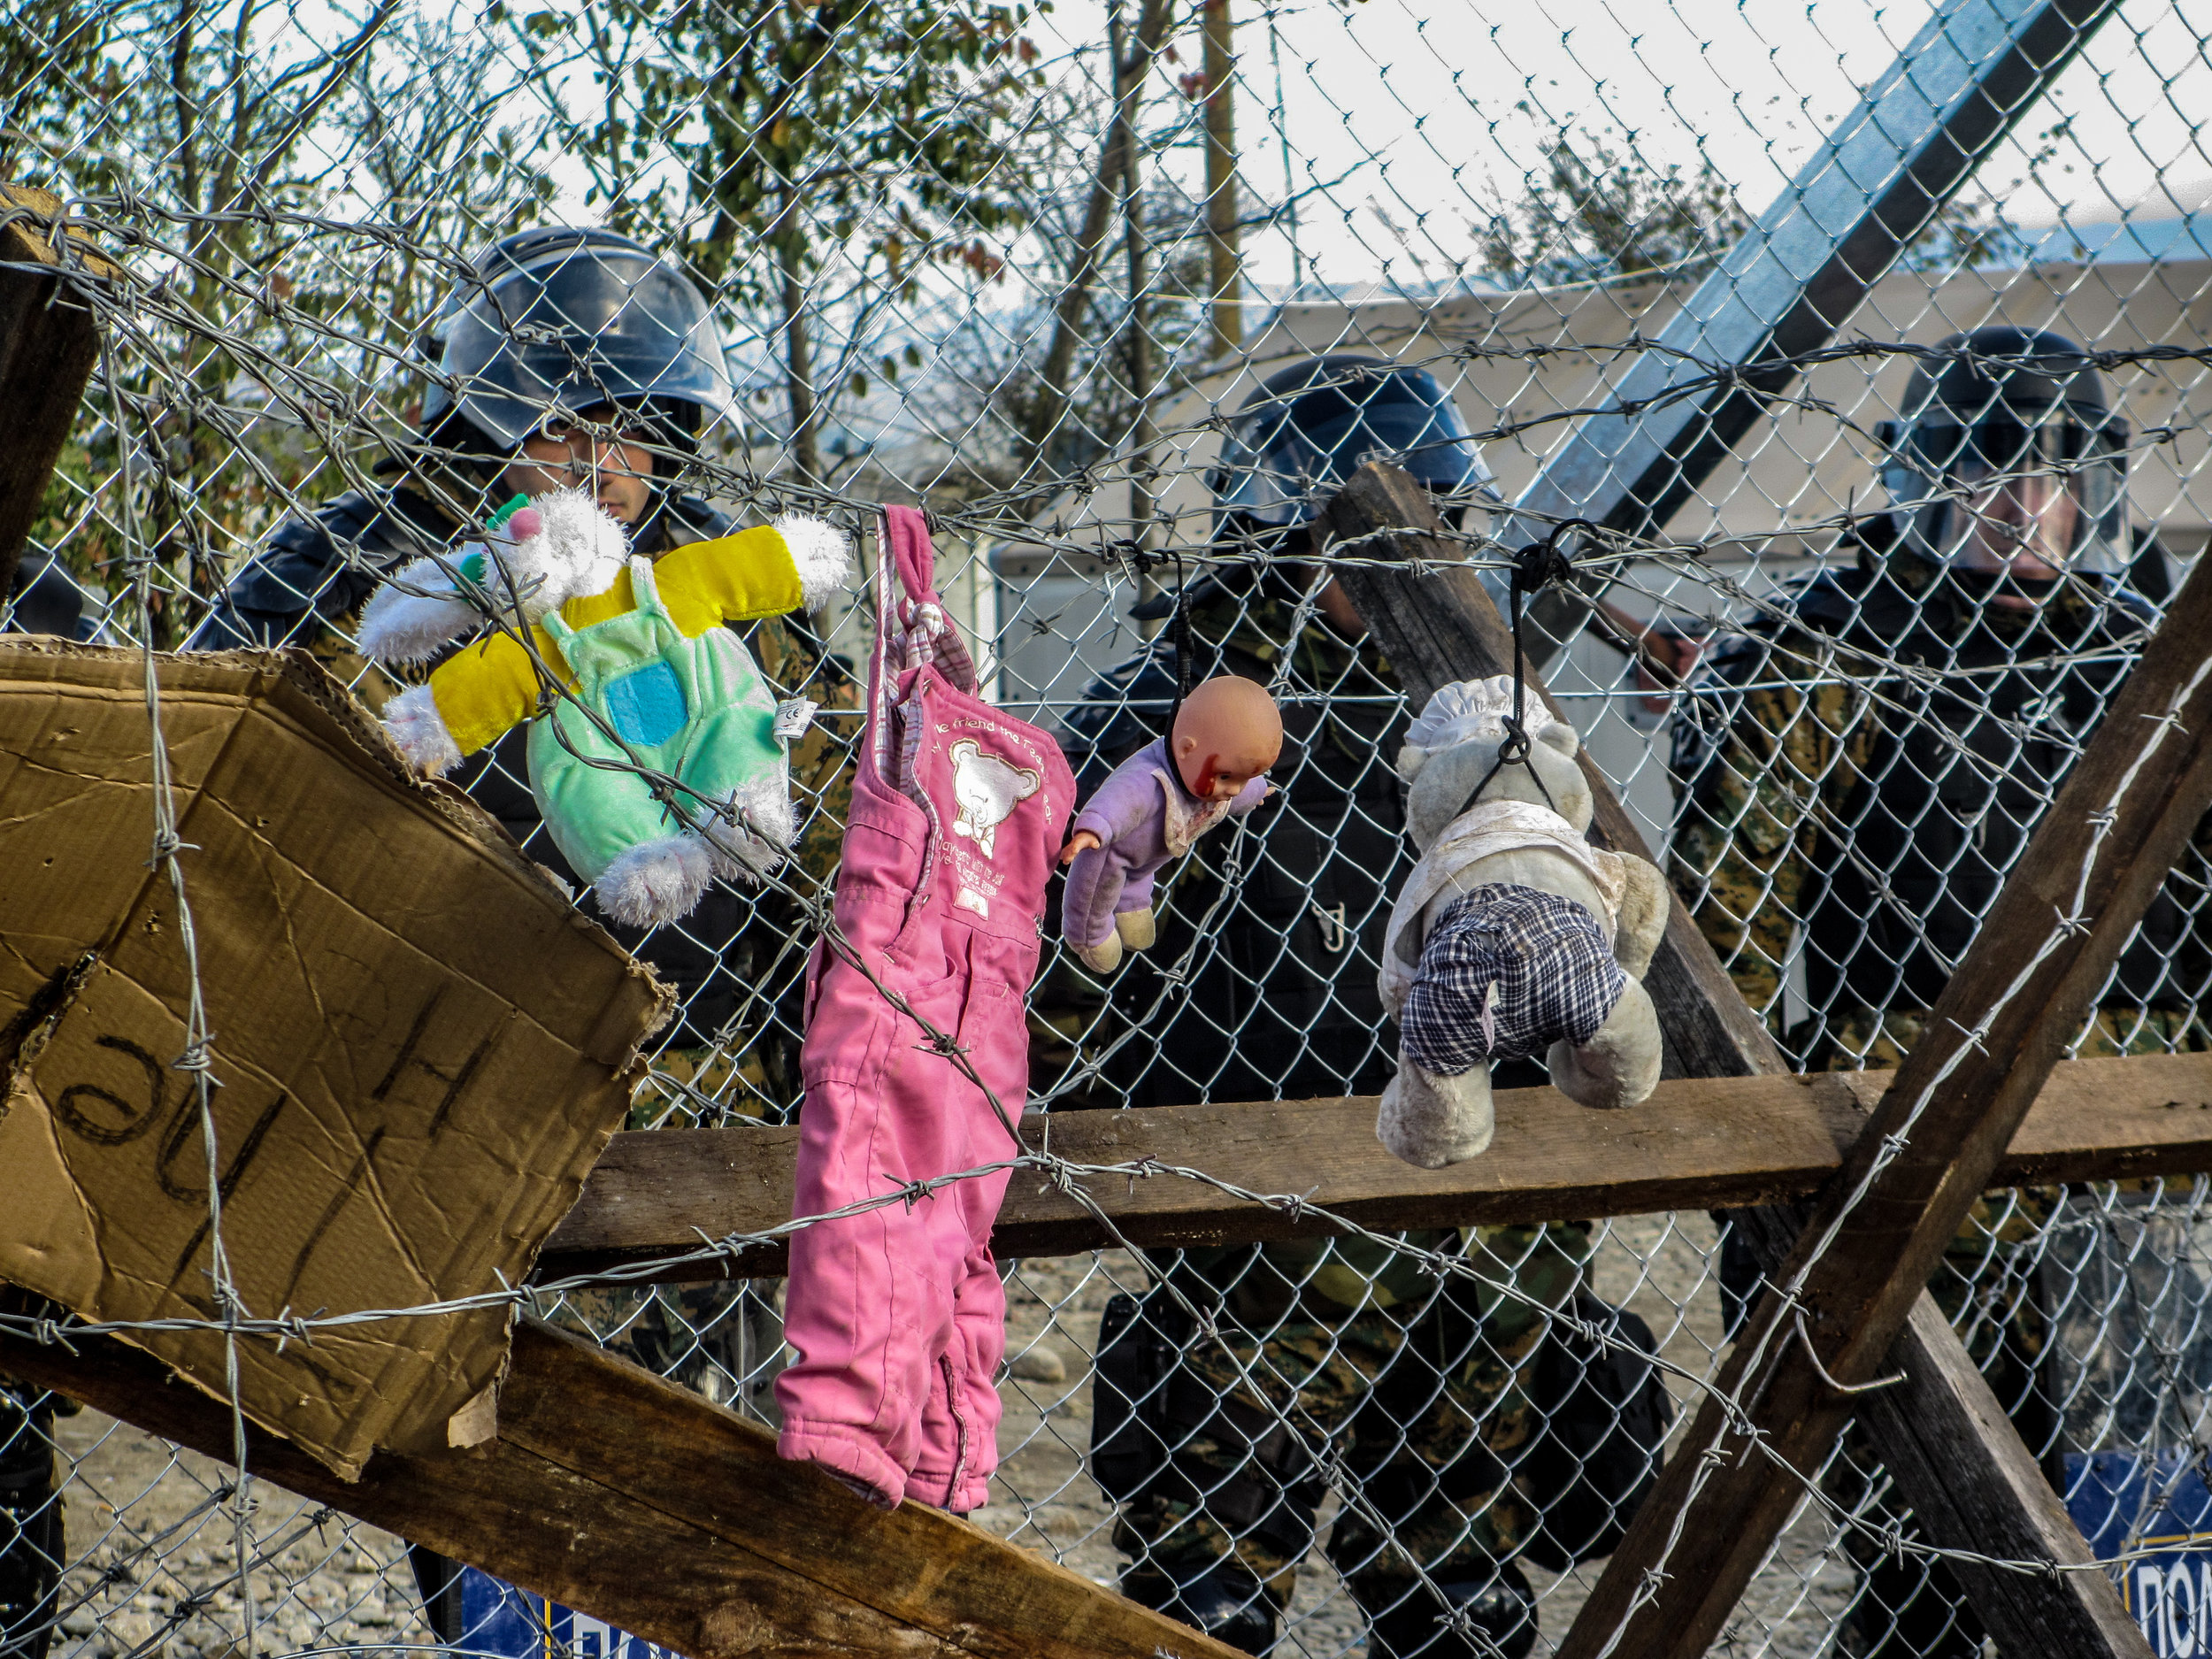 Toys left behind by children at border crossing in Greece.